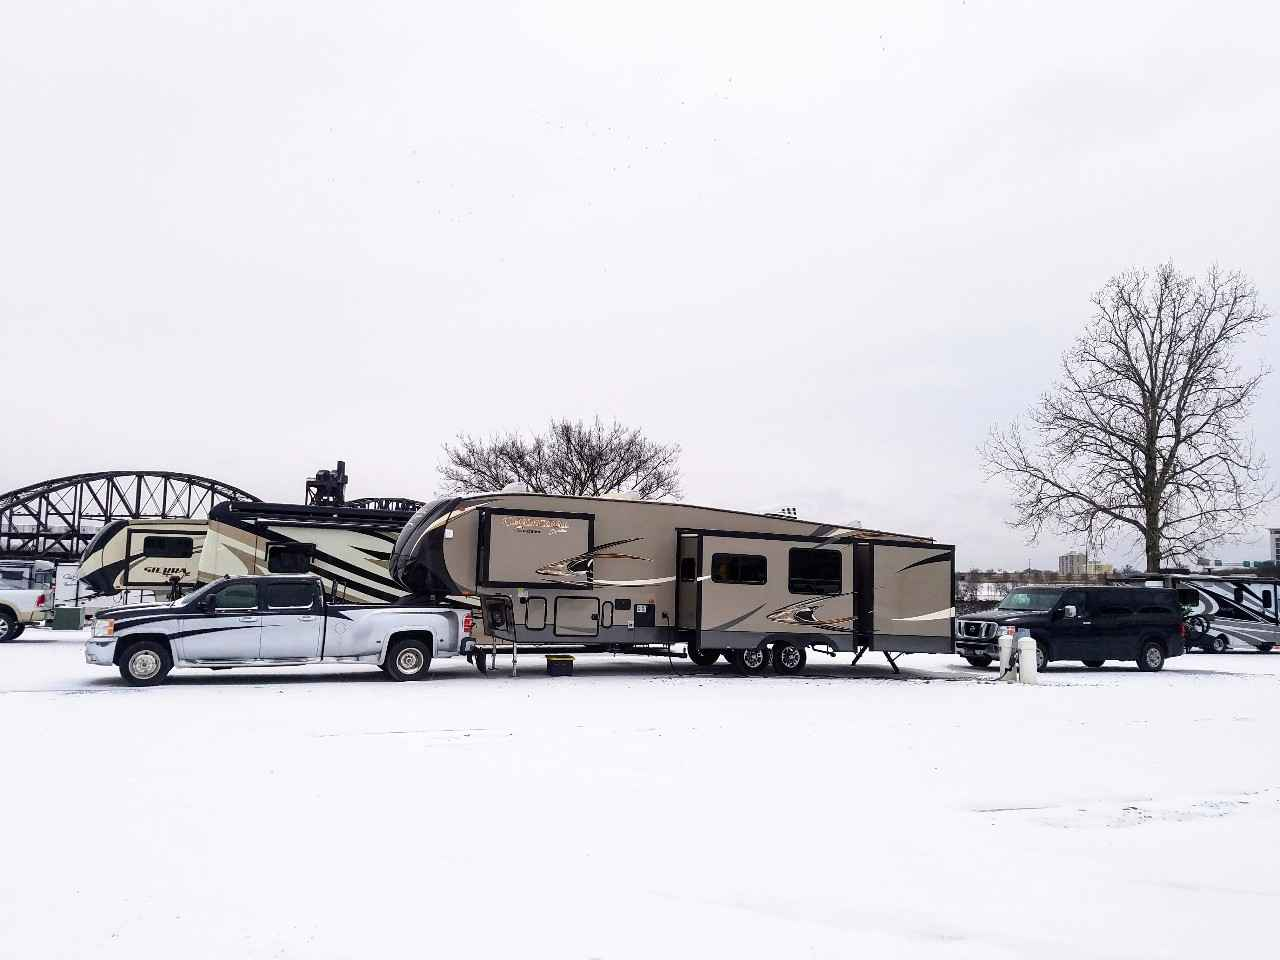 2014 Used Coachmen Chaparral 357bhs Fifth Wheel In Florida Fl